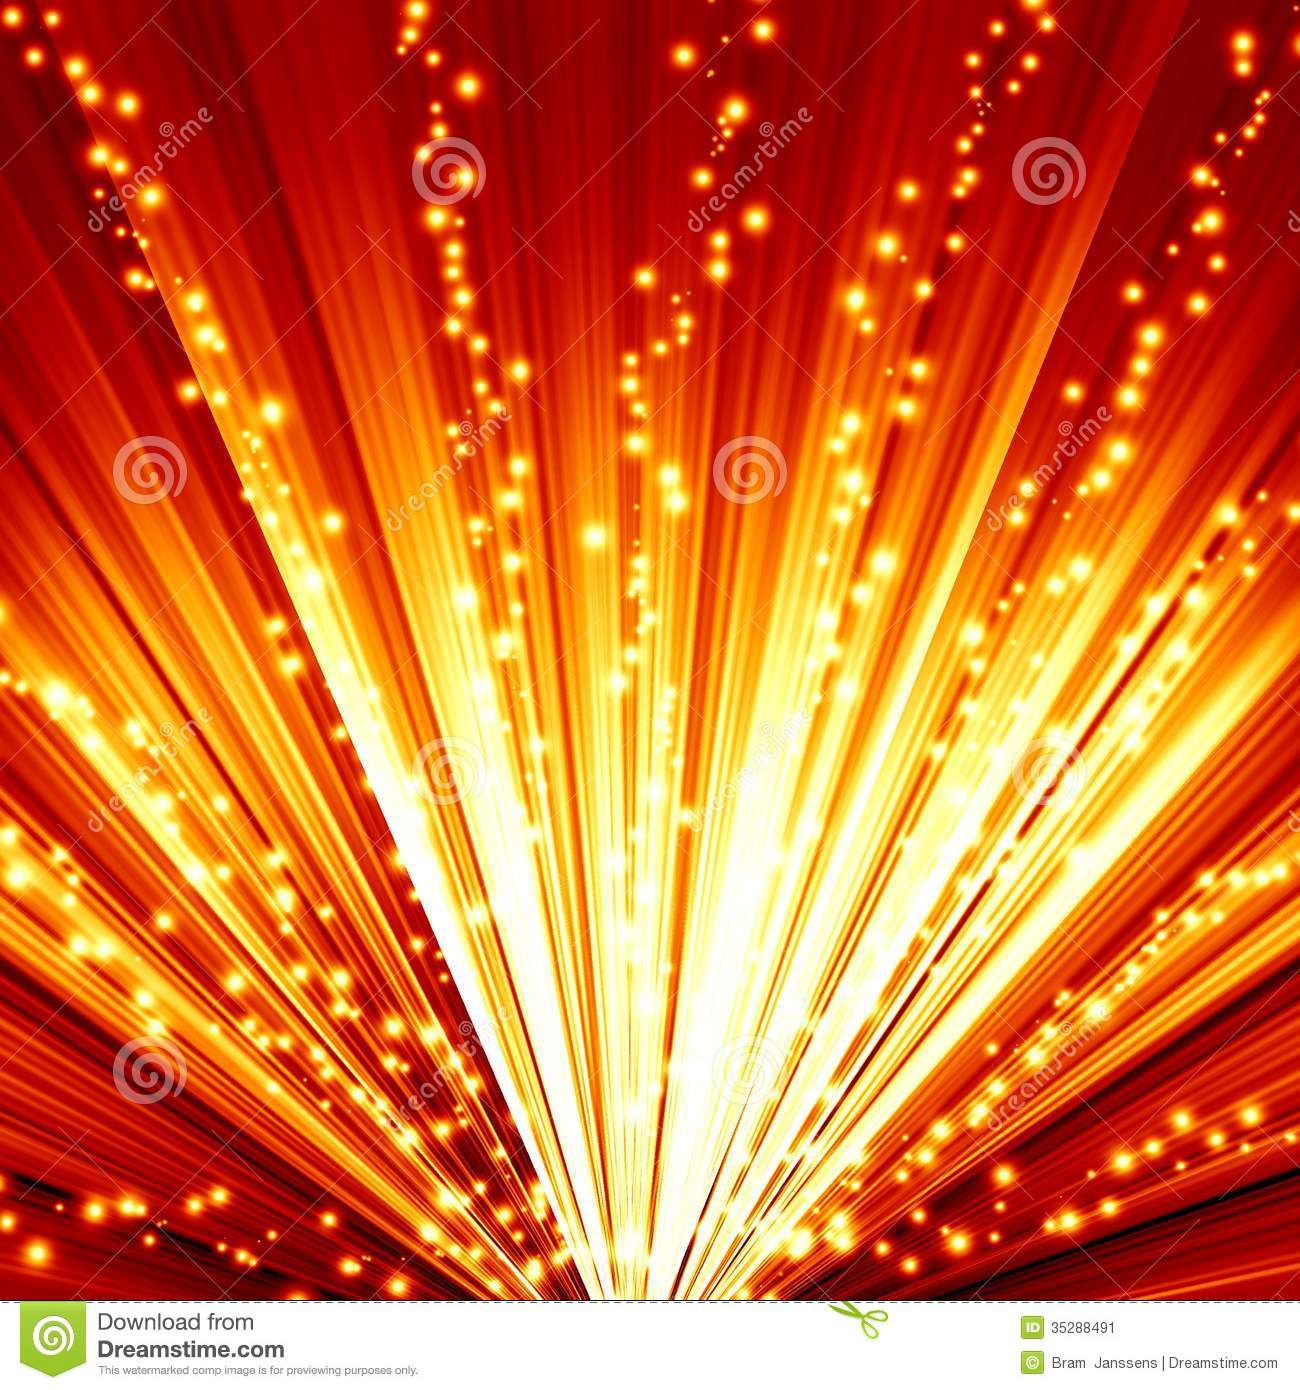 Orange Background Stock Image - Image: 35288491